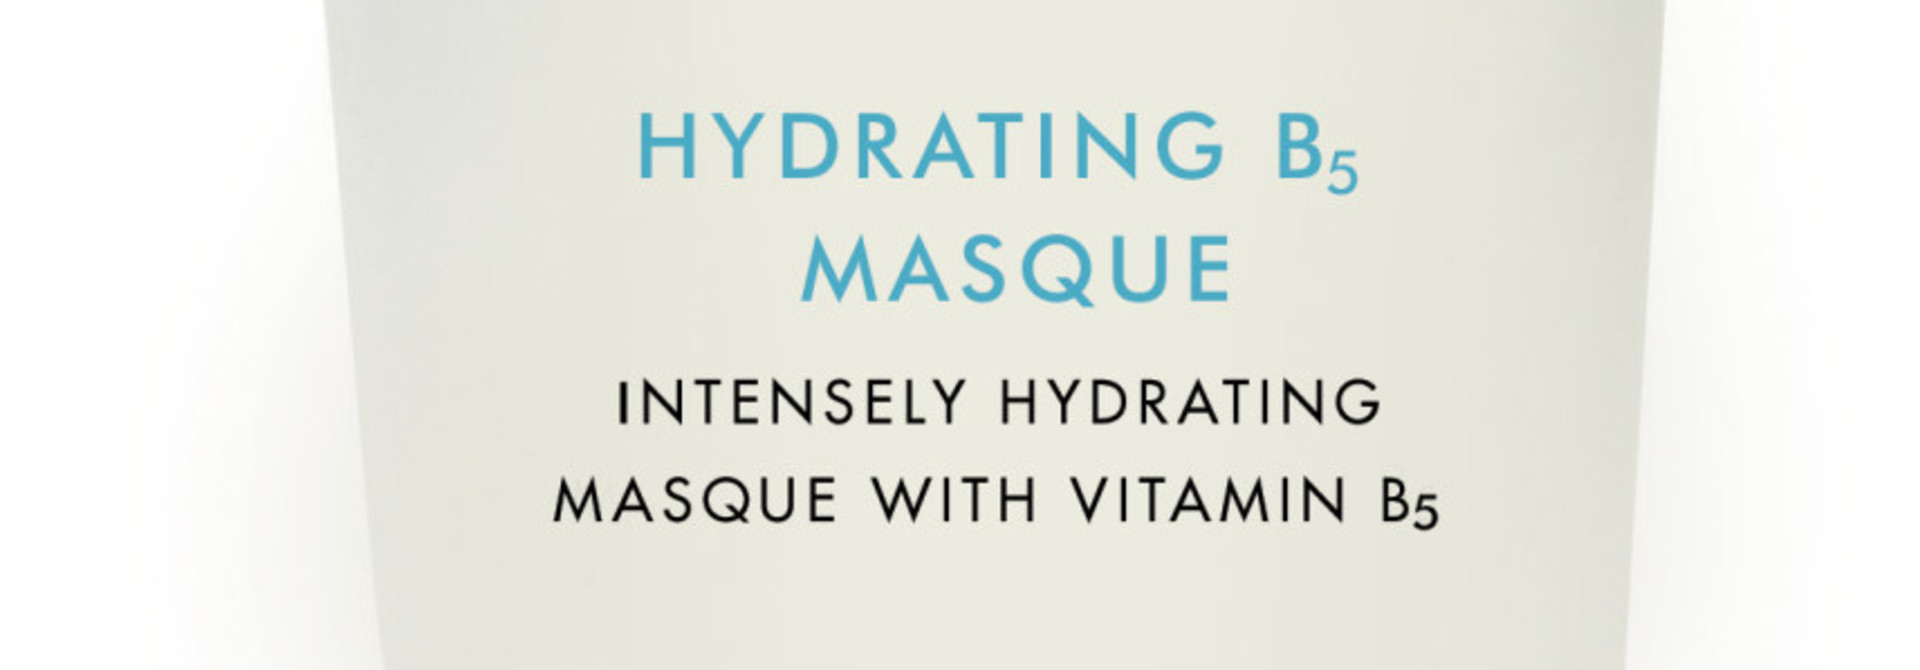 Hydrating B5 Masque - 75ml